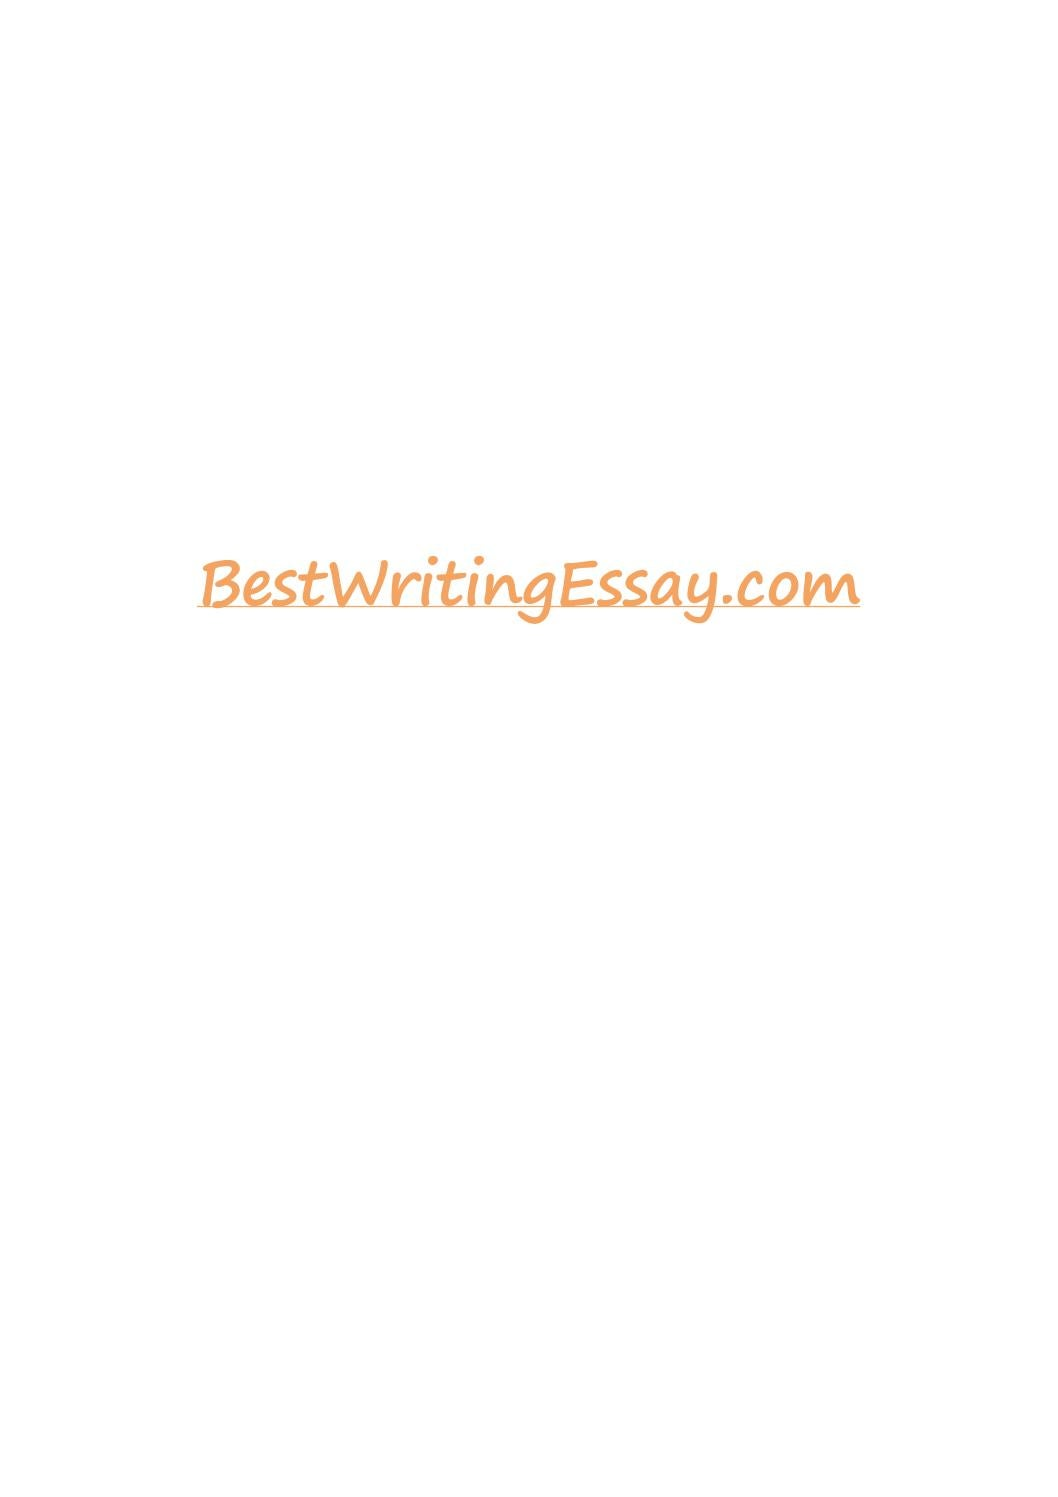 Help with professional papers online